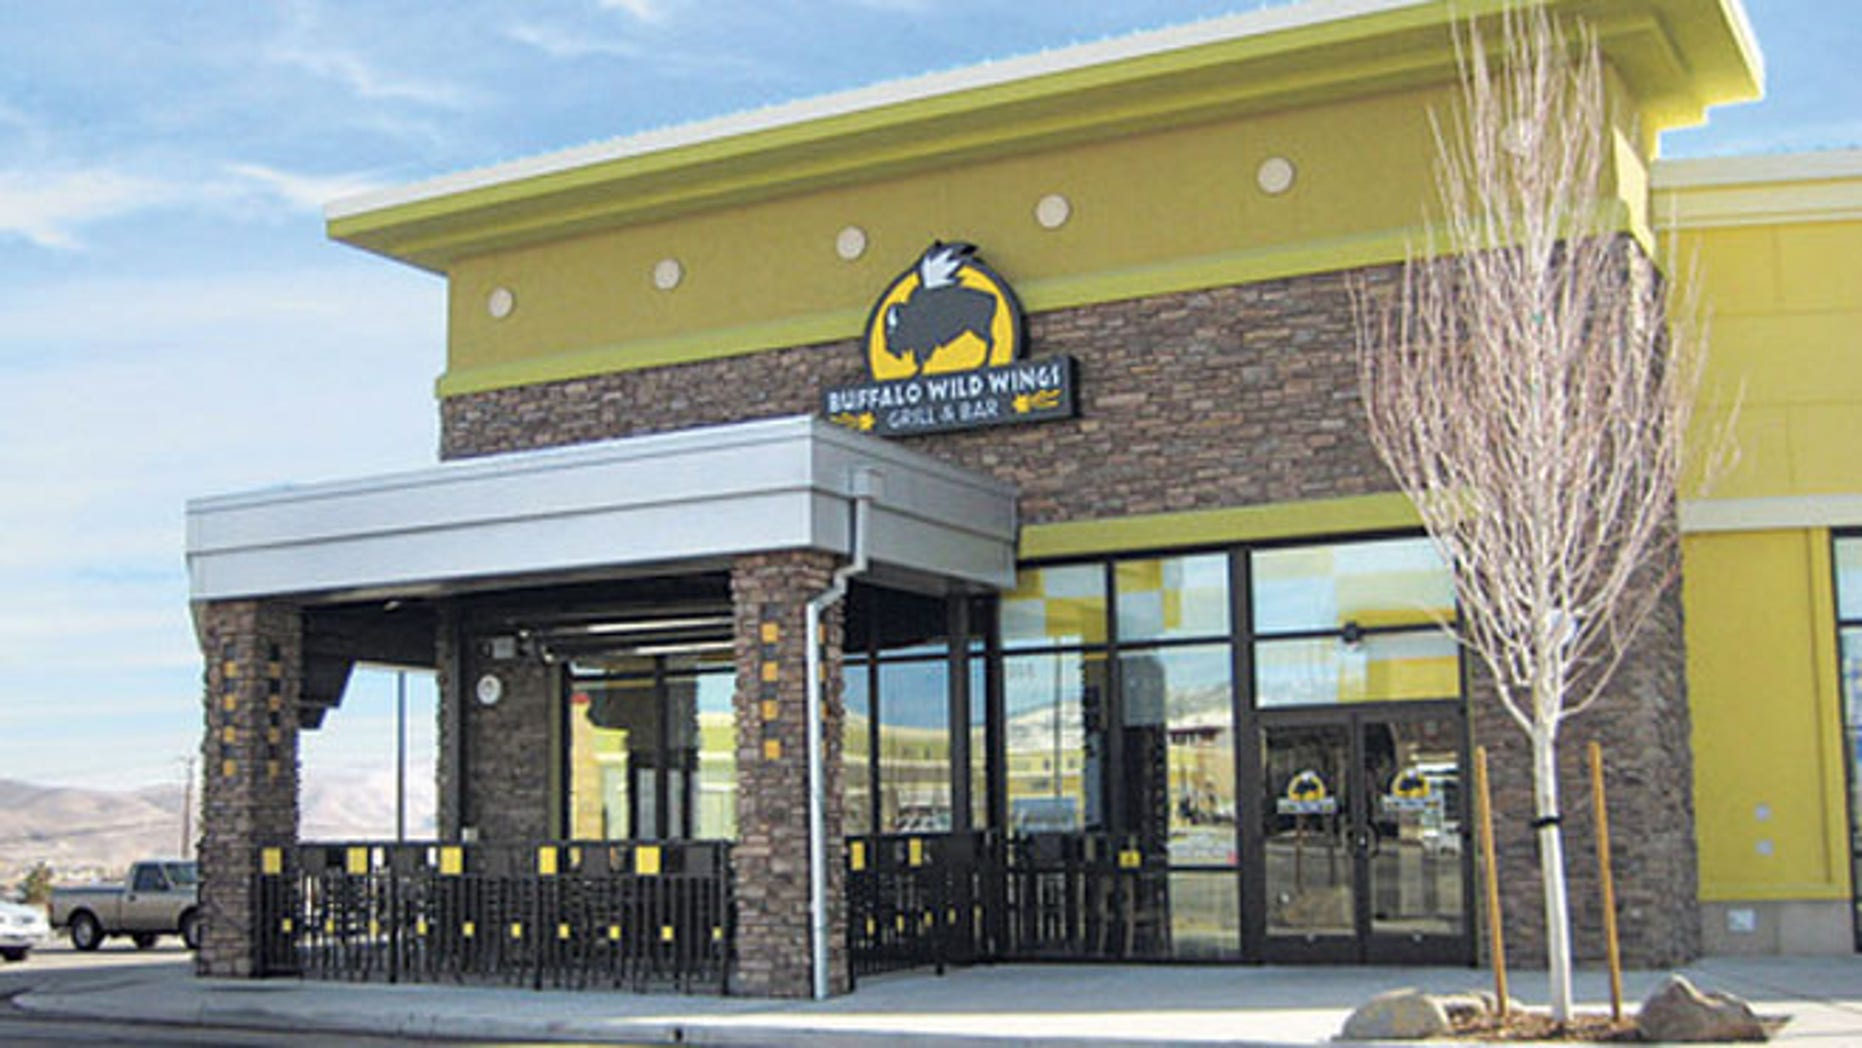 An Alabama Buffalo Wild Wings will be the location of regular church services to attract those who otherwise wouldn't go to church.